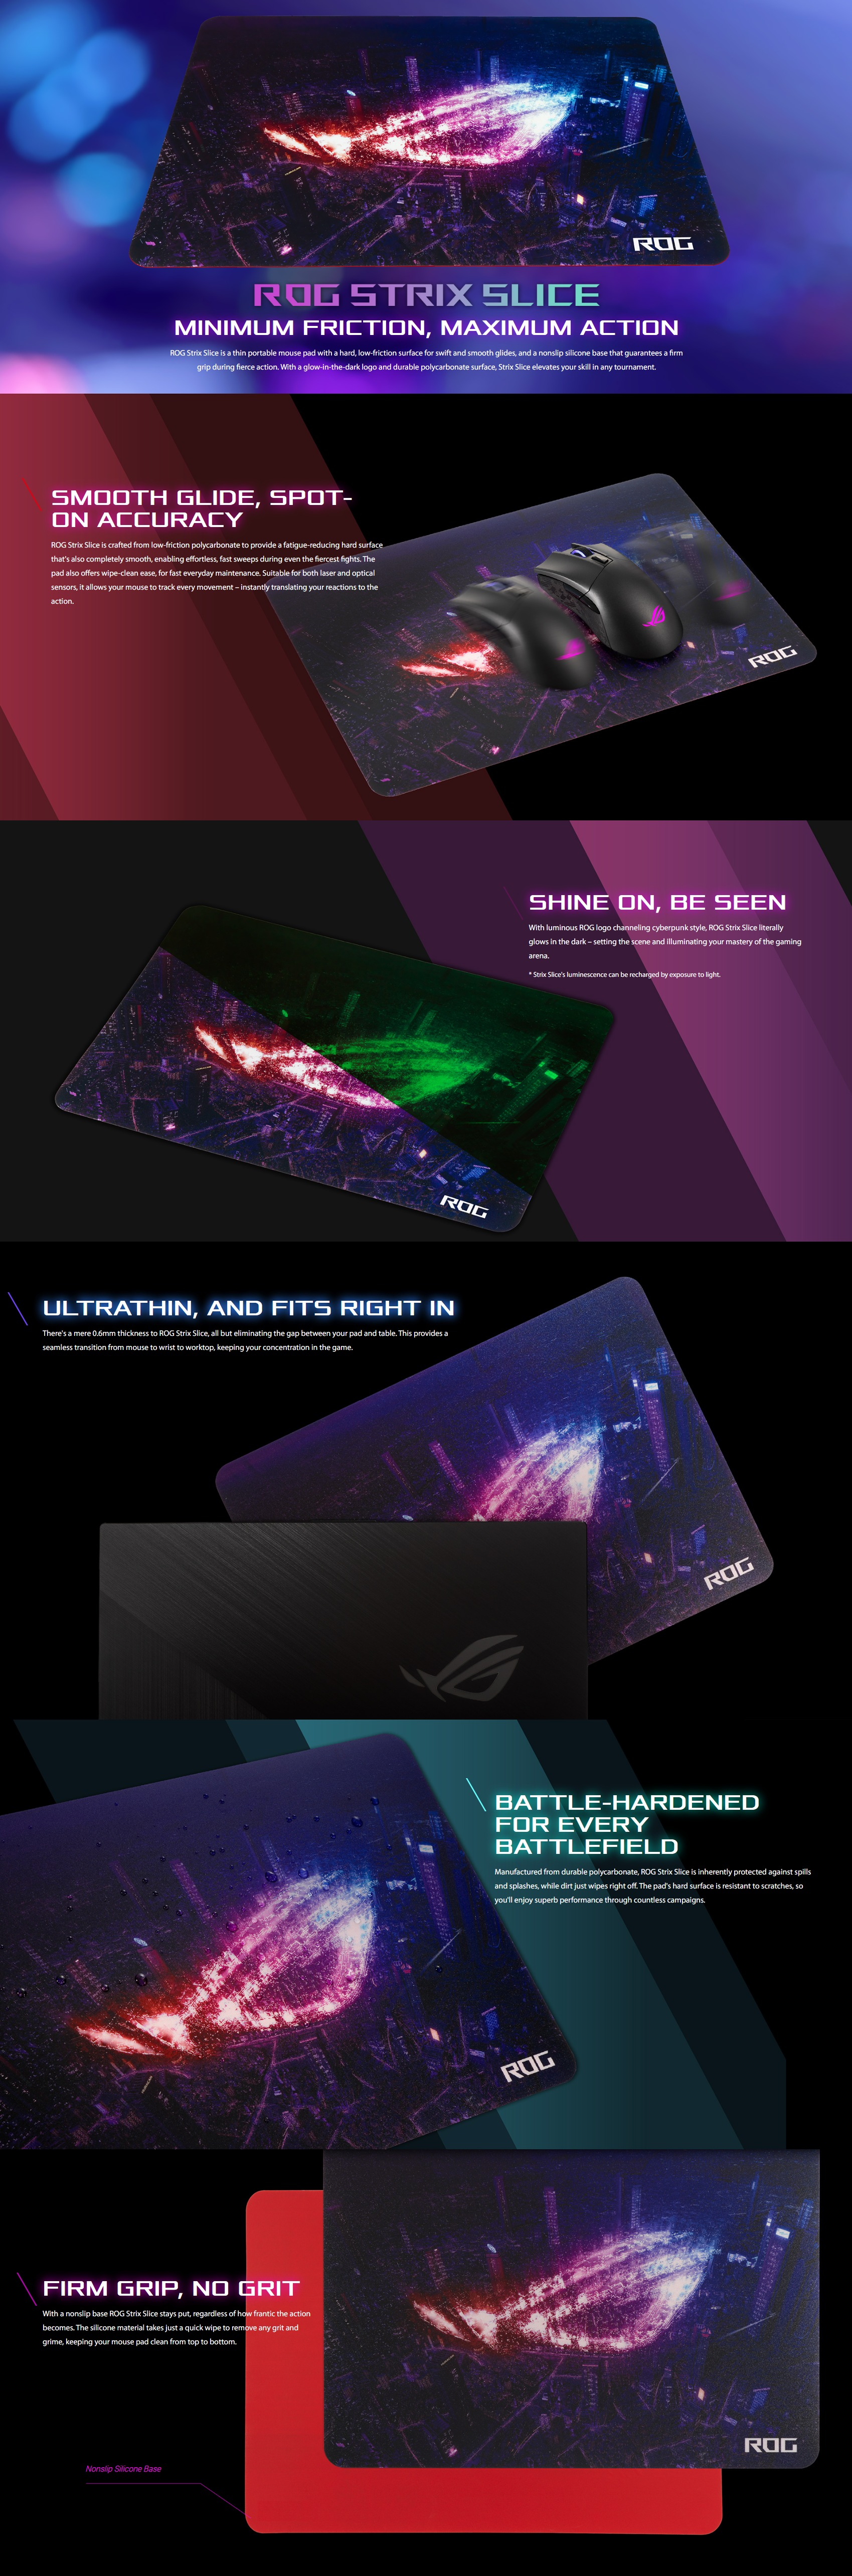 A large marketing image providing additional information about the product ASUS ROG Strix Slice Gaming Mousemat - Additional alt info not provided